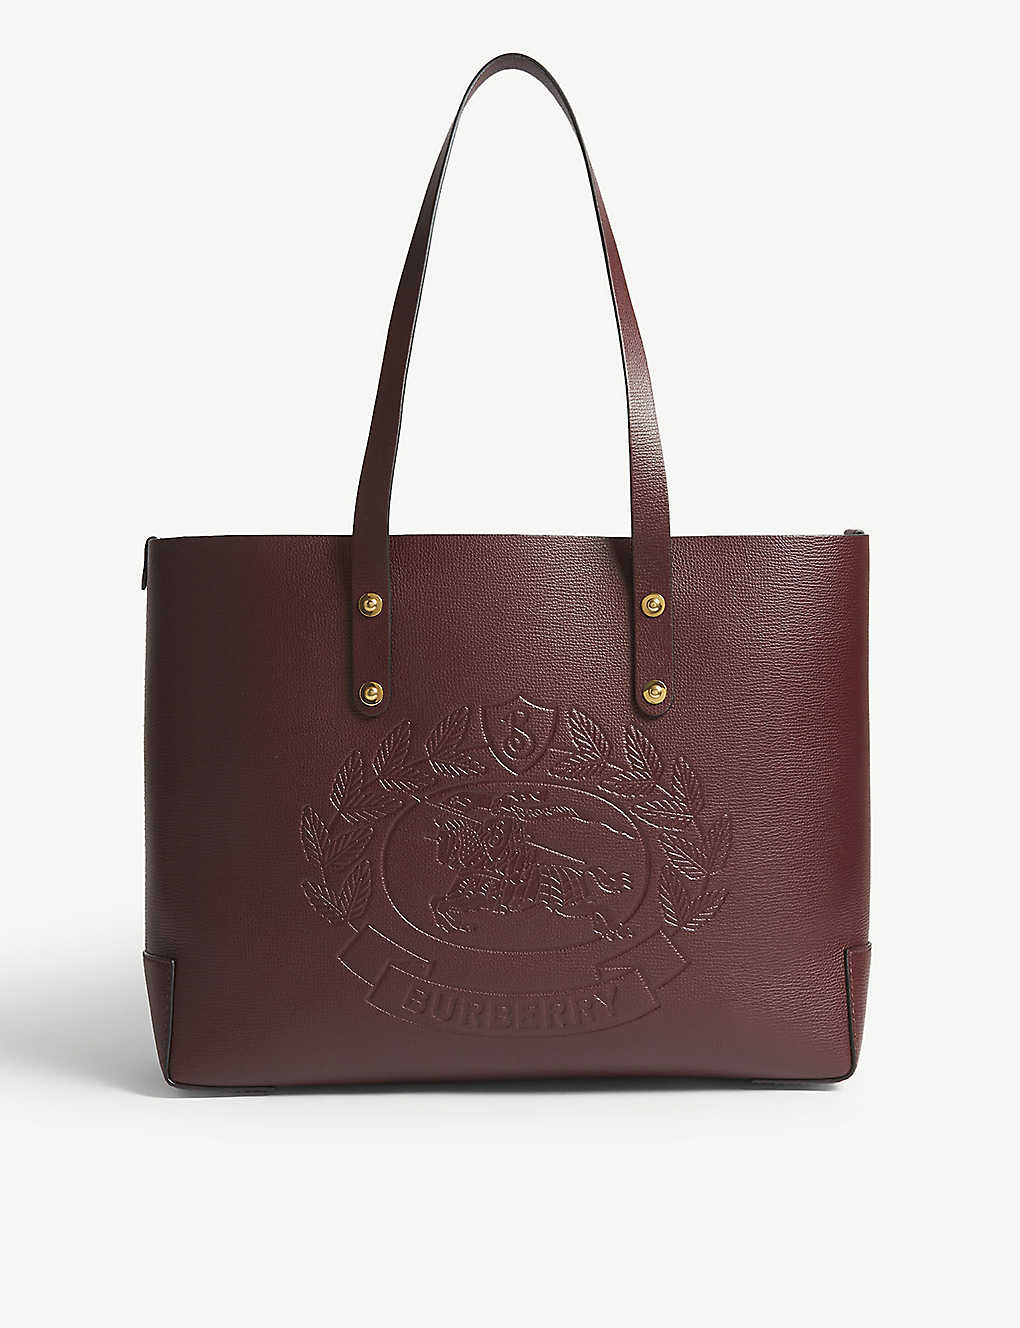 62891a210b9 BURBERRY - Embossed crest leather tote